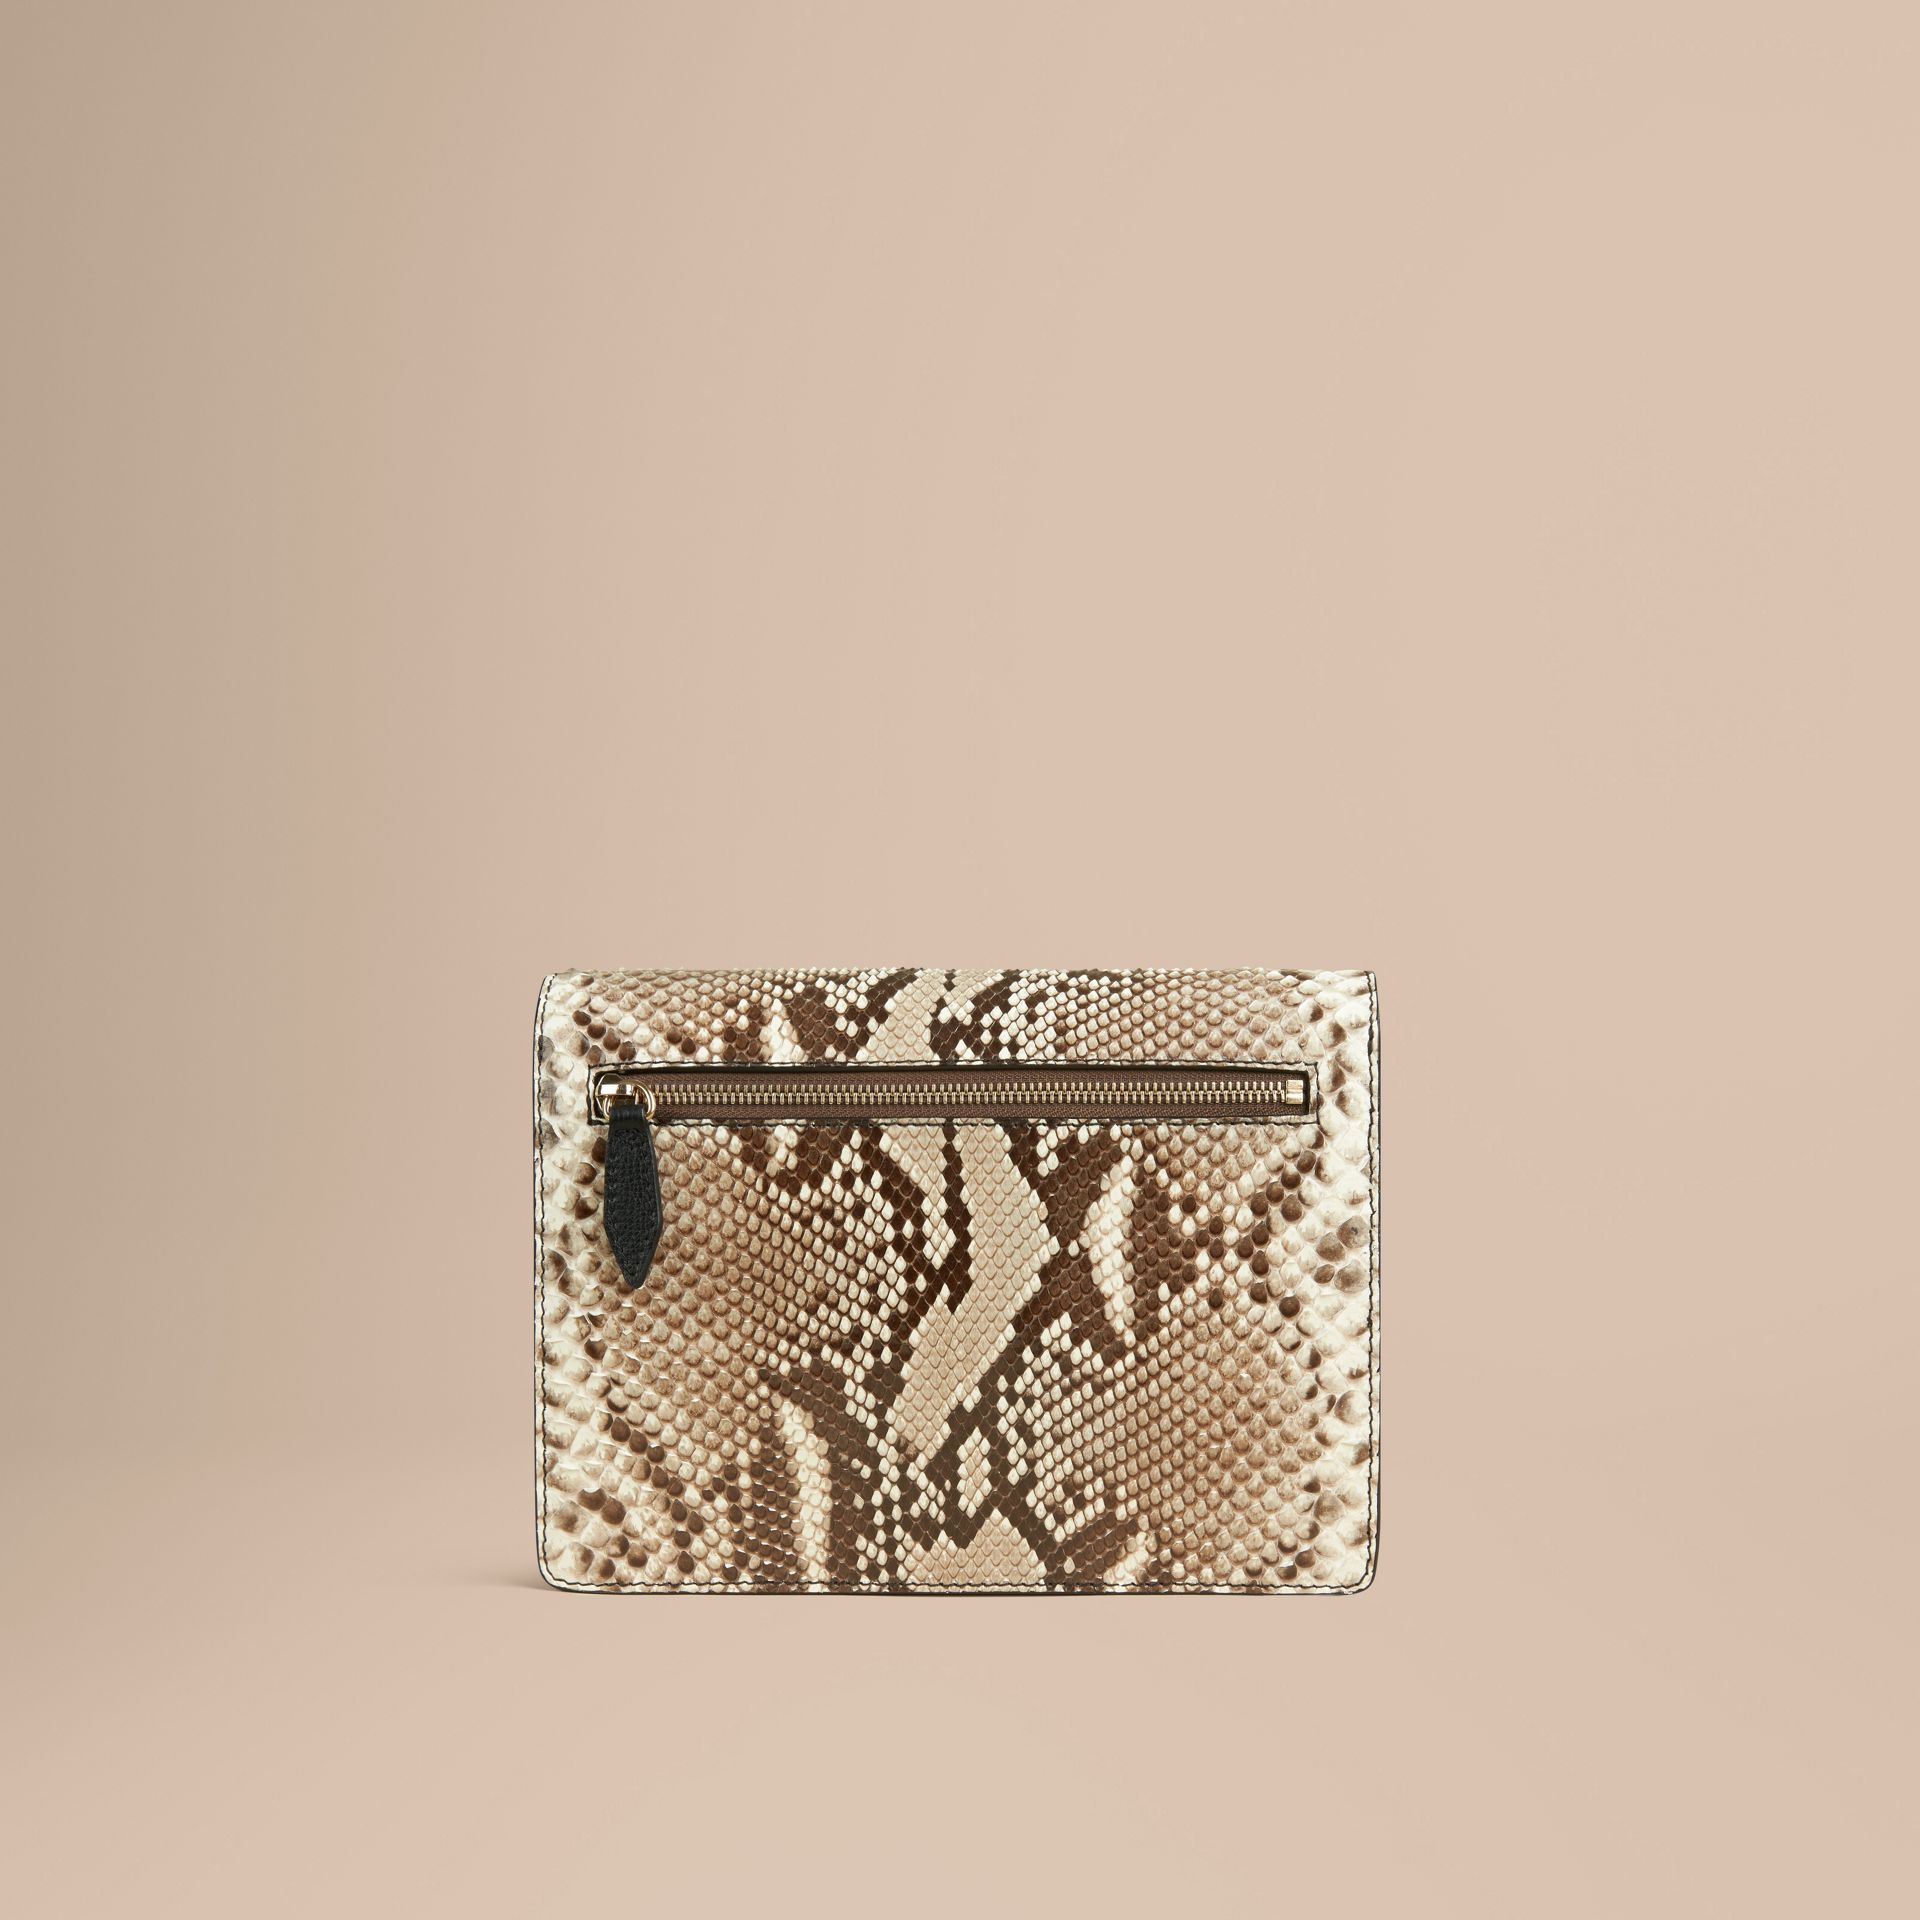 Small Python Crossbody Bag in Natural - Women | Burberry Hong Kong - gallery image 3